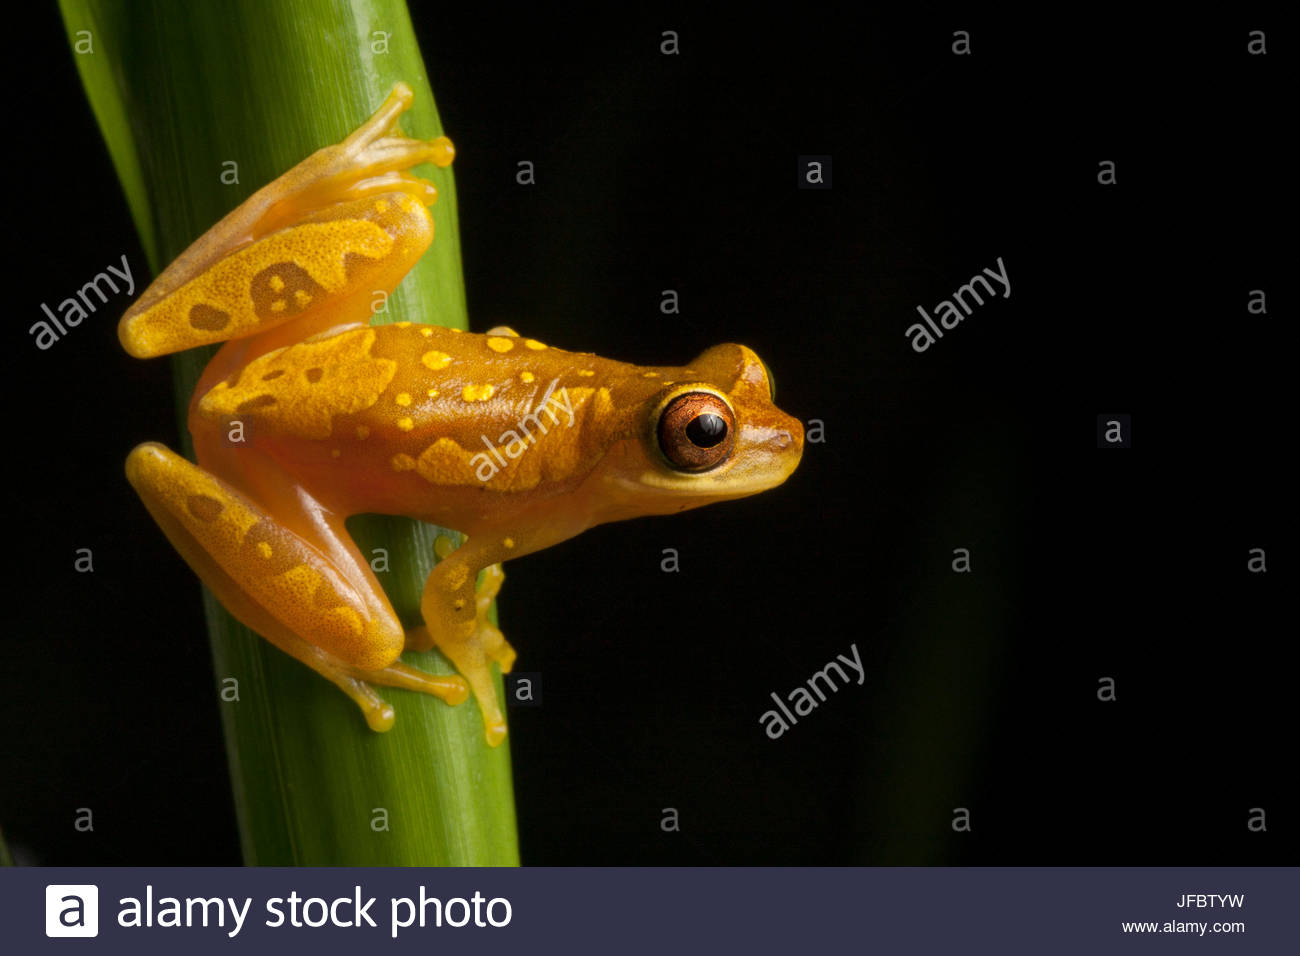 Portrait of a hourglass tree frog, Dendropsophus ebraccatus. - Stock Image